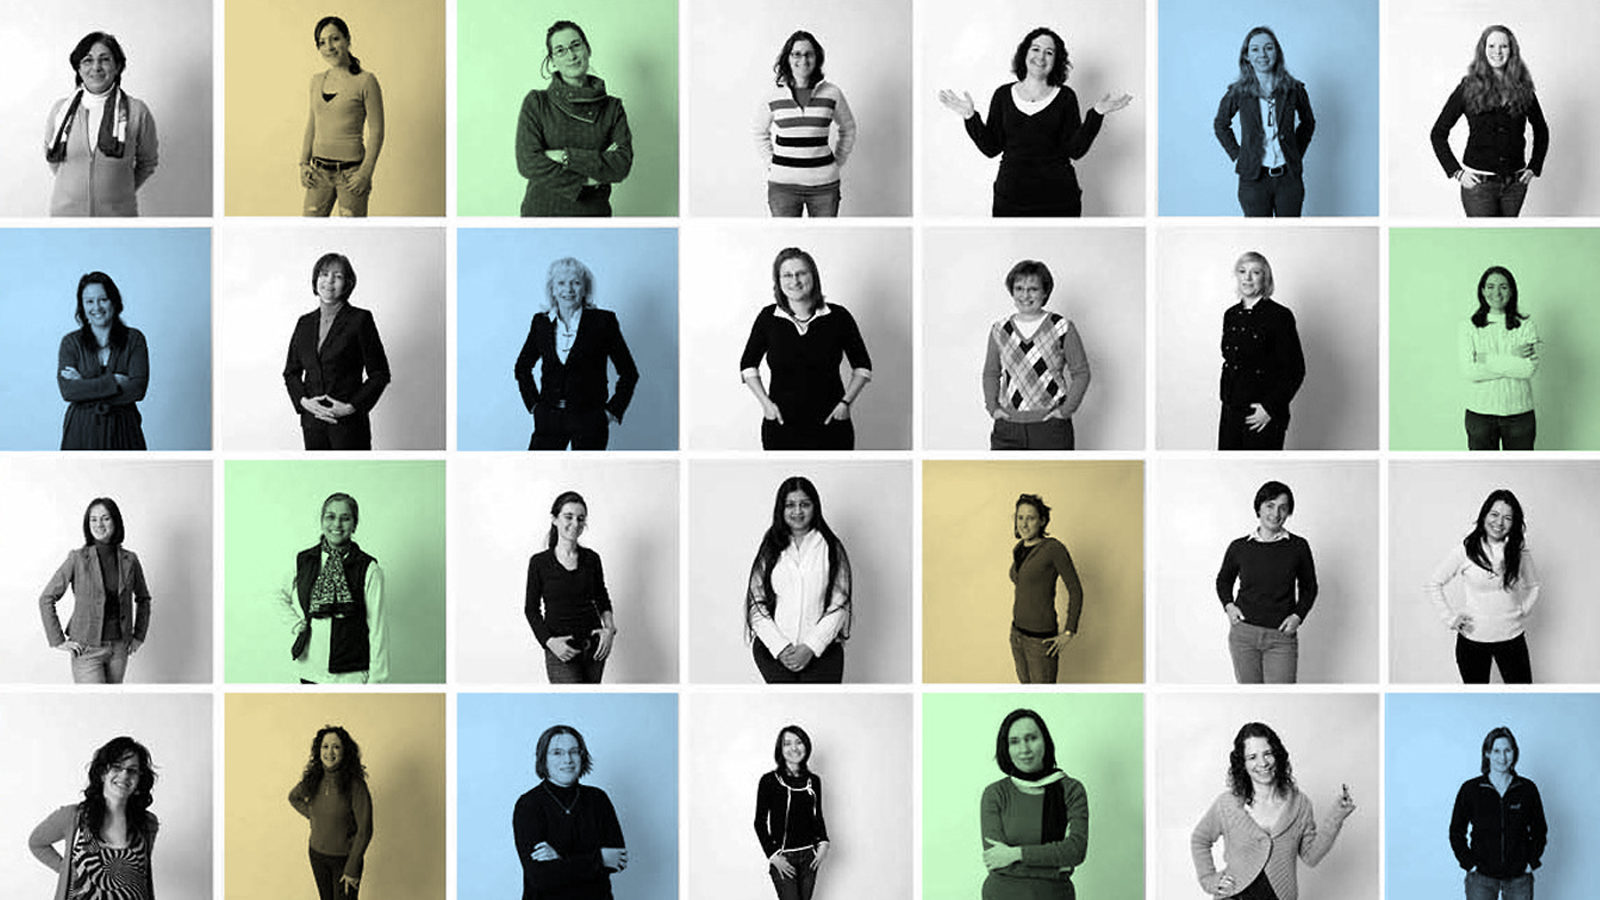 Grid 7X4 of photos of women in science